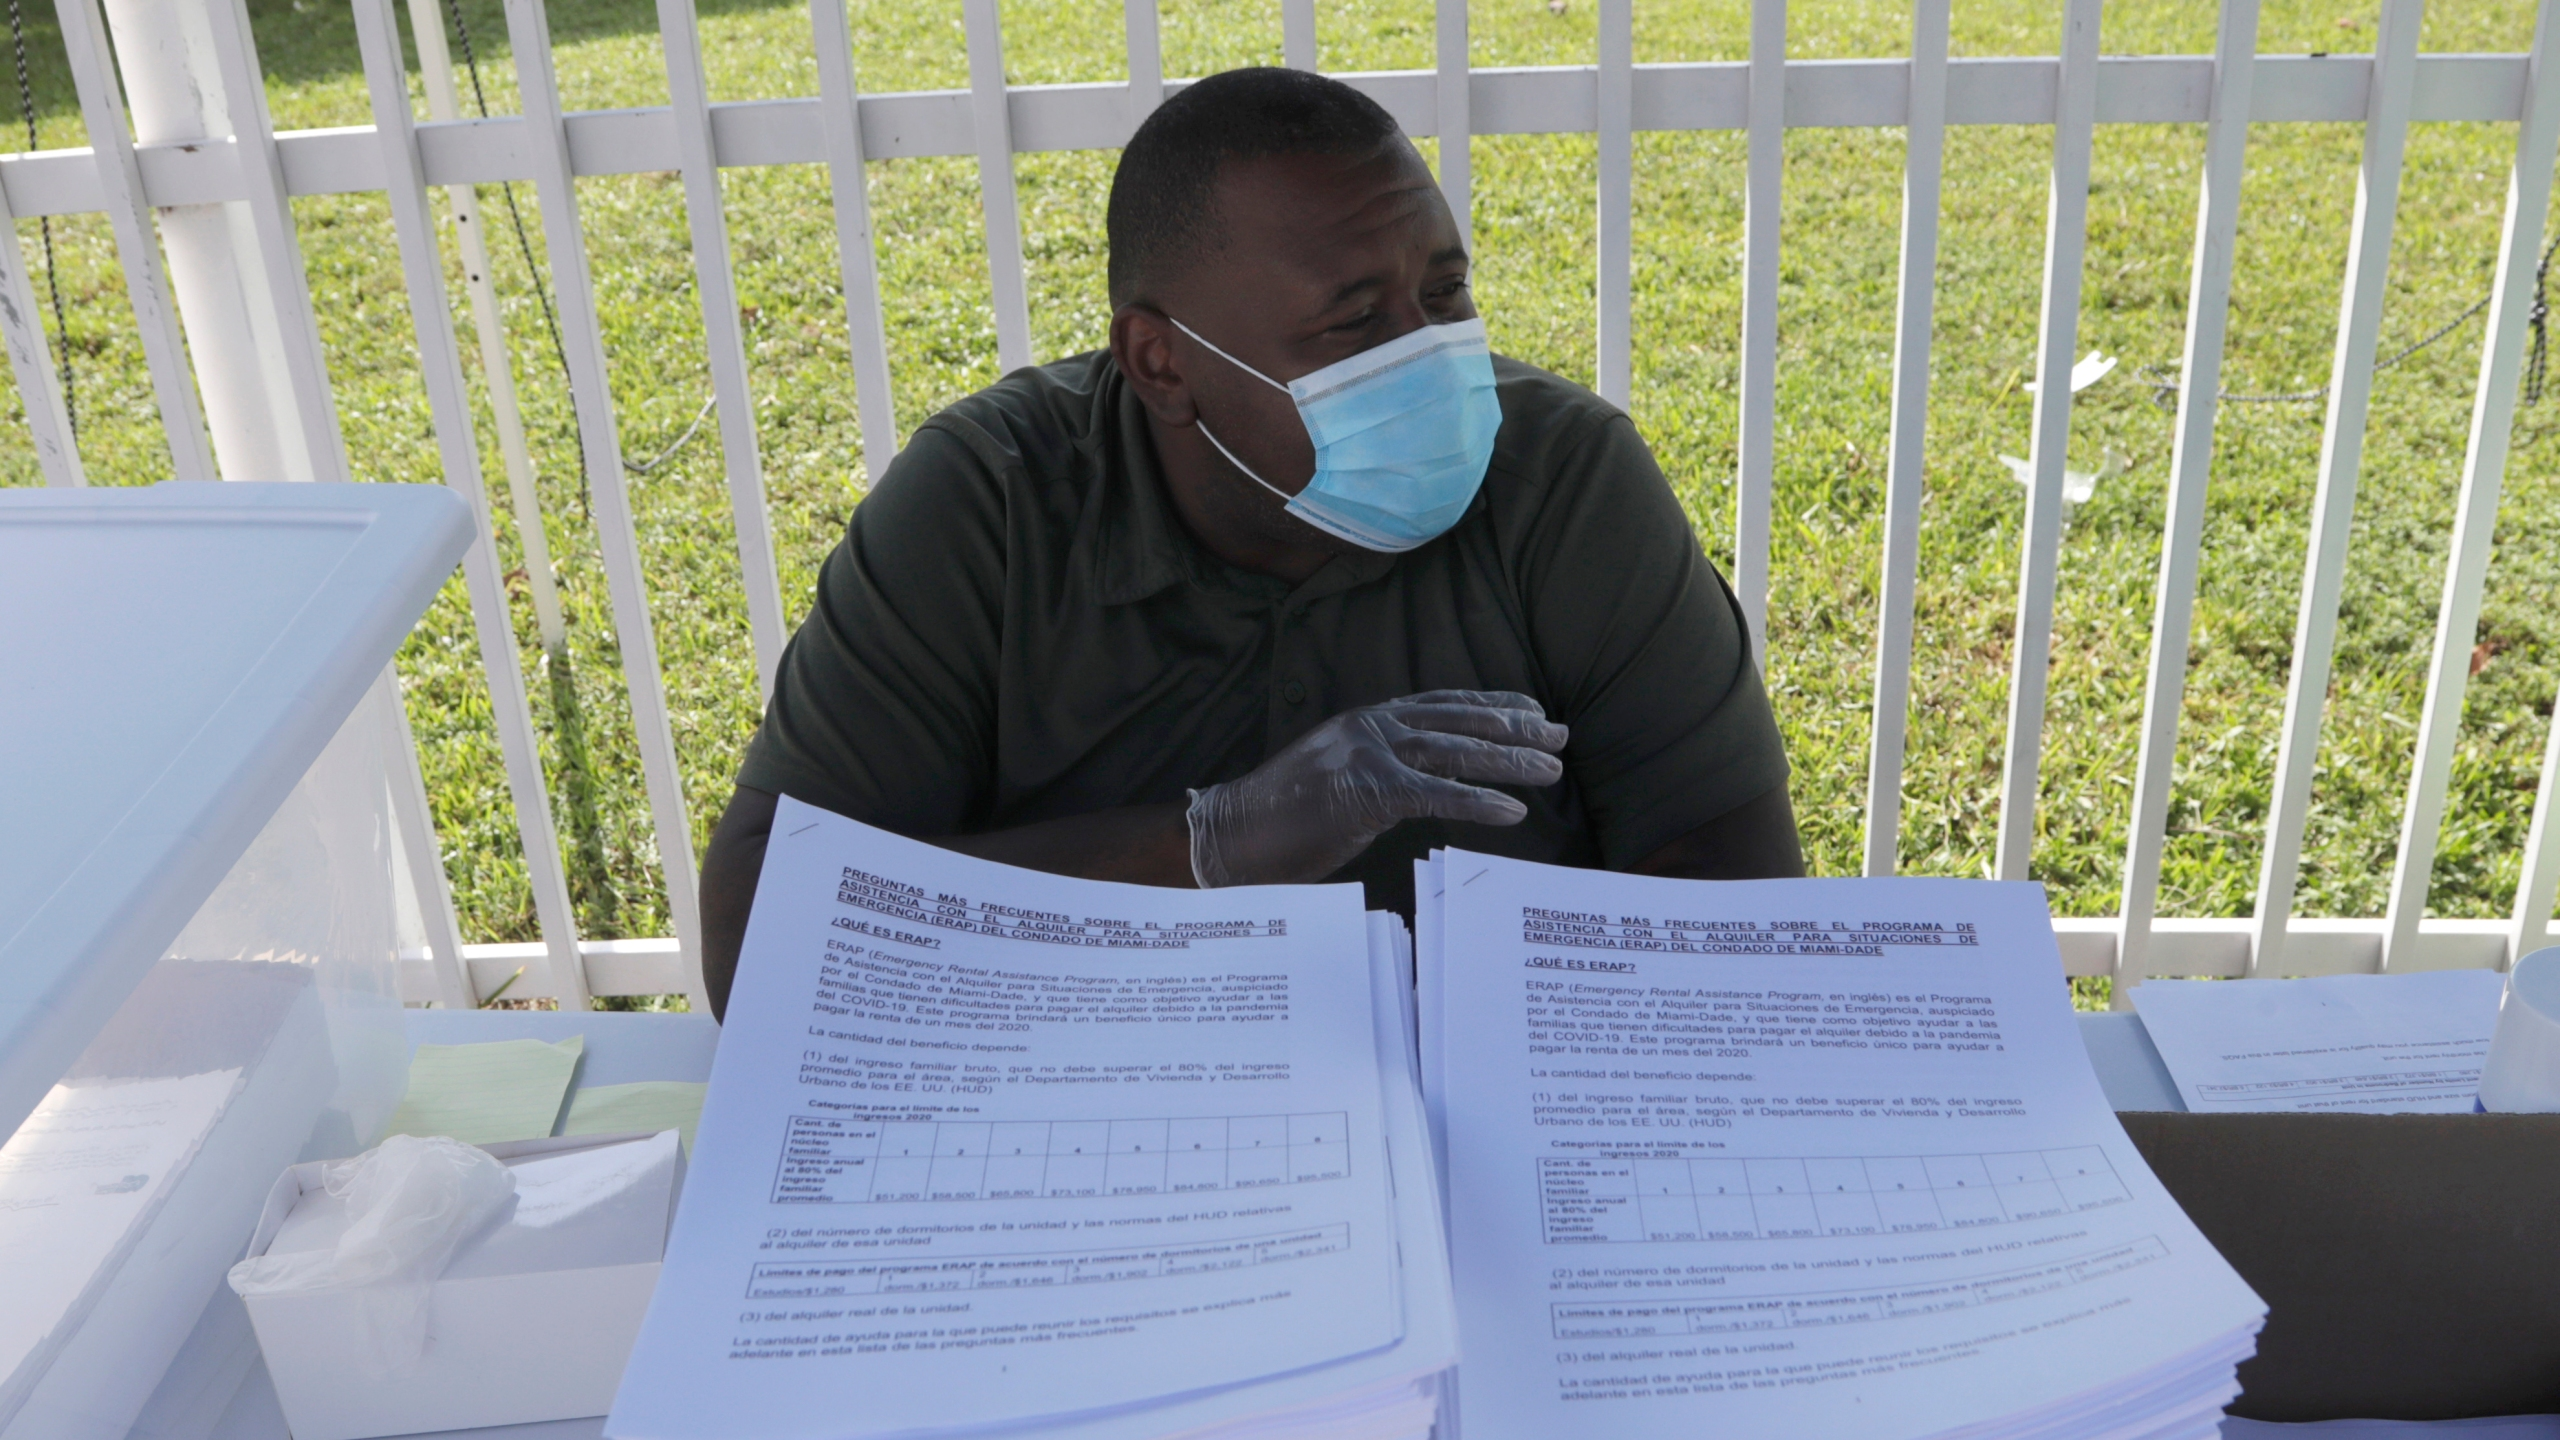 Tino Duncombe works at a drive-up site where applications in Spanish are offered for the Emergency Rental Assistance Program, a one-time benefit to help with one month's rent offered by Miami-Dade County, during the coronavirus pandemic, Thursday, July 16, 2020, in Miami. (AP Photo/Lynne Sladky)